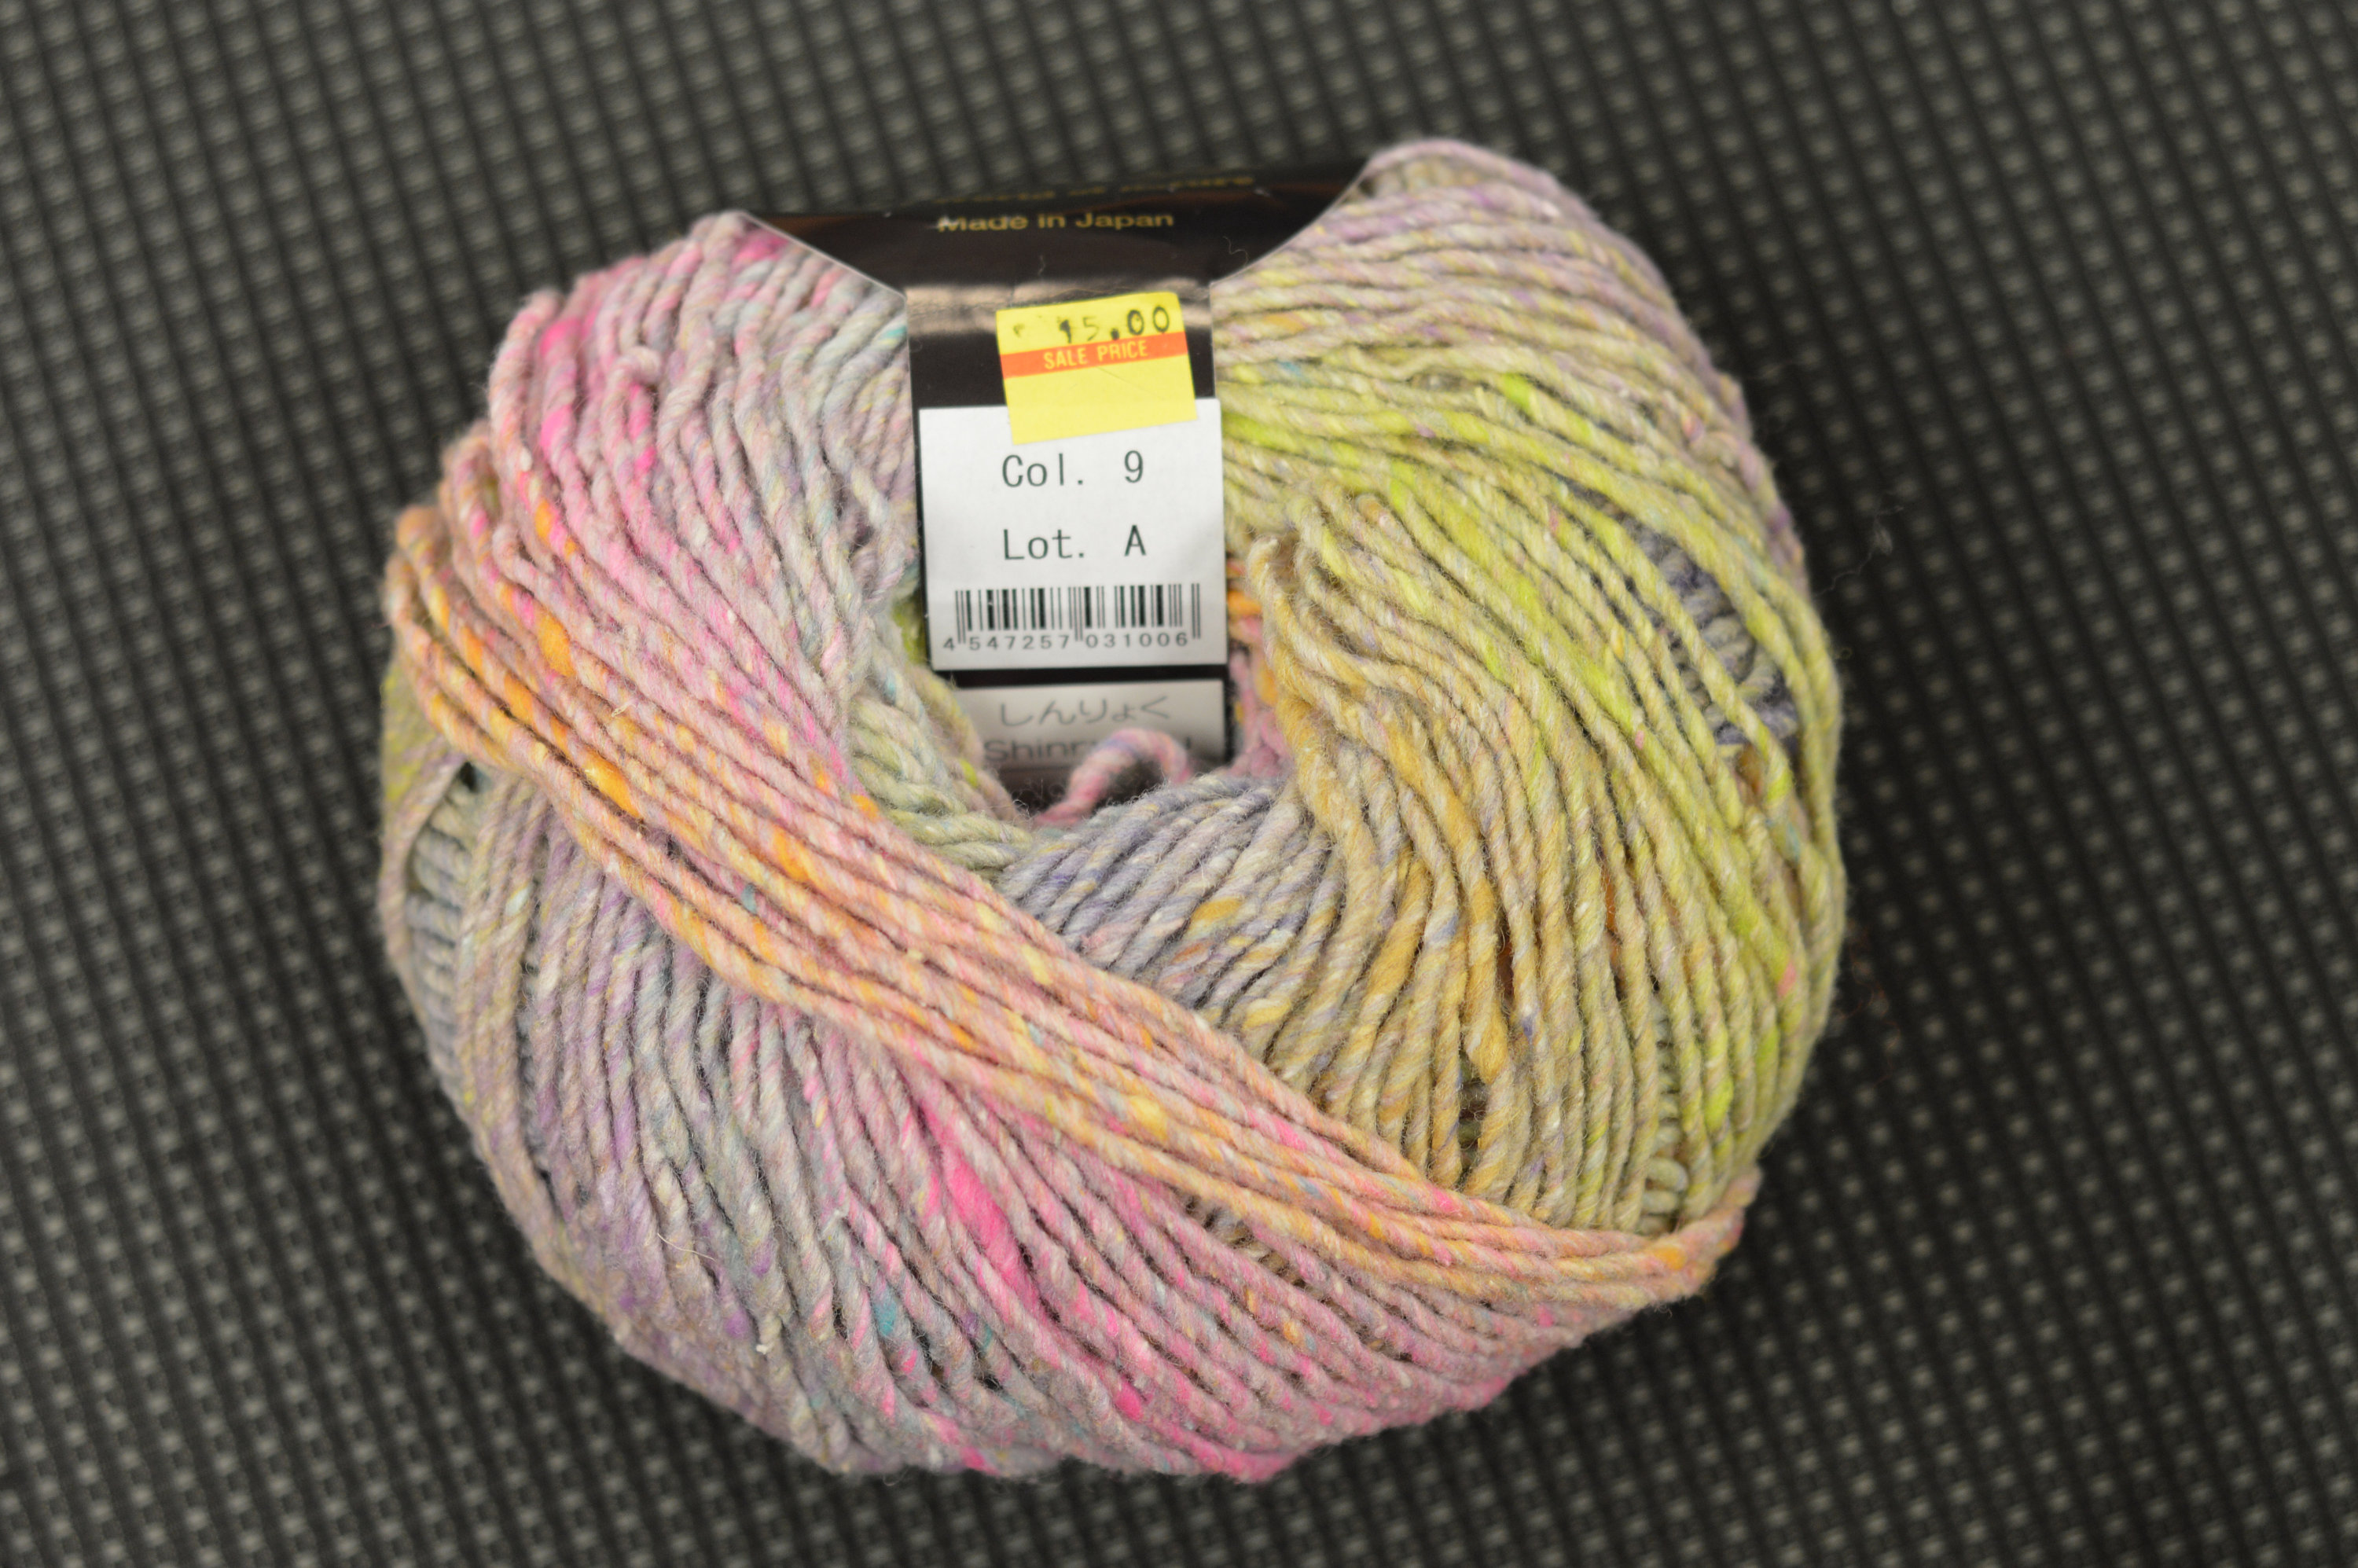 Noro Shinryoku Yarn, Color 9, Lot A wool and silk